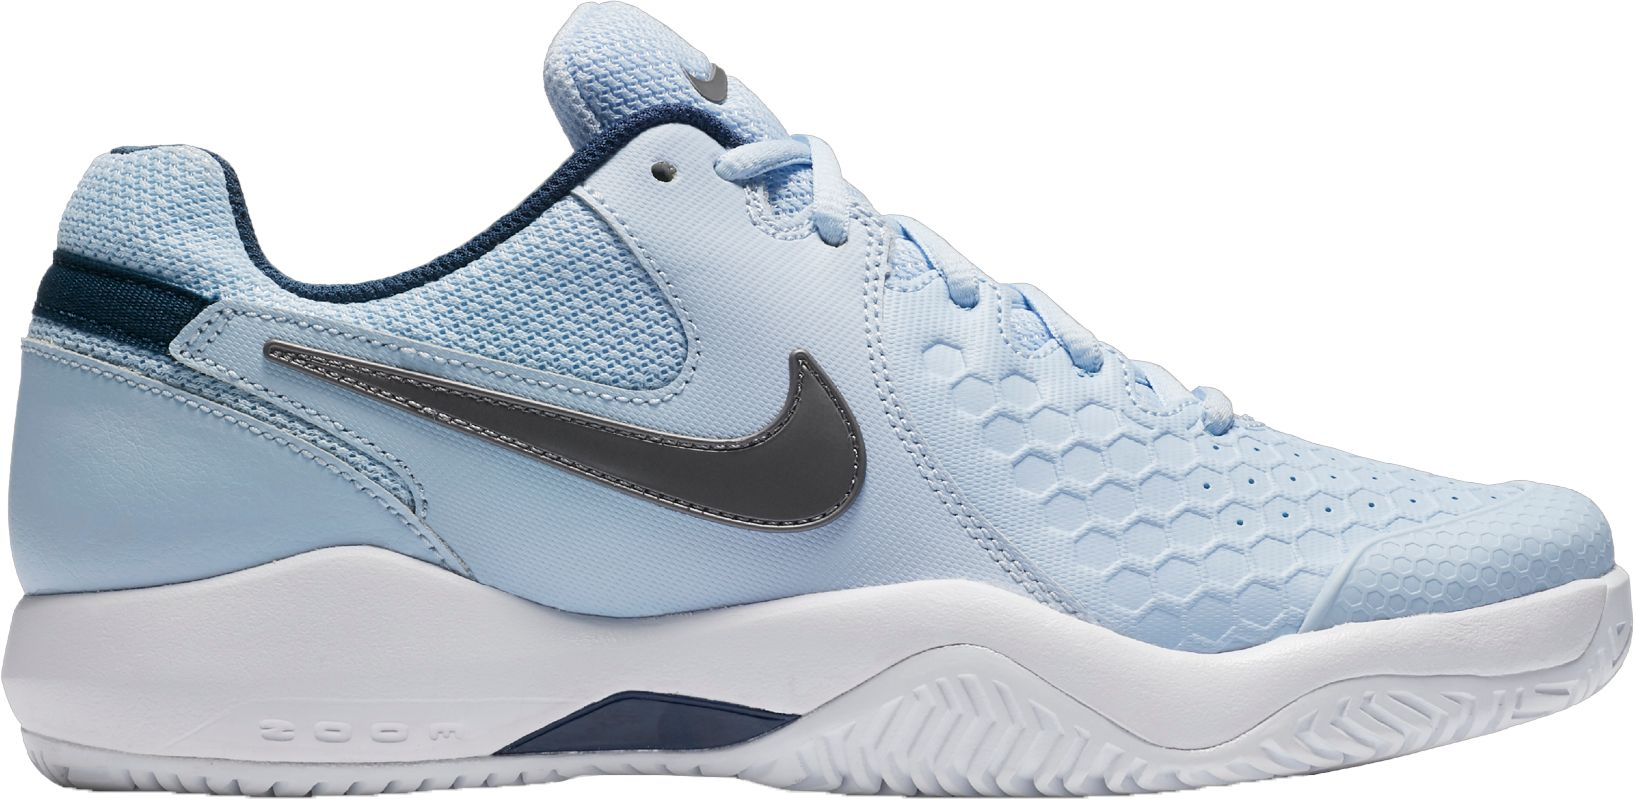 sale order clearance low cost Nike Air Zoom Resistance ... Women's Tennis Shoes sale looking for L1lgEn5dCu